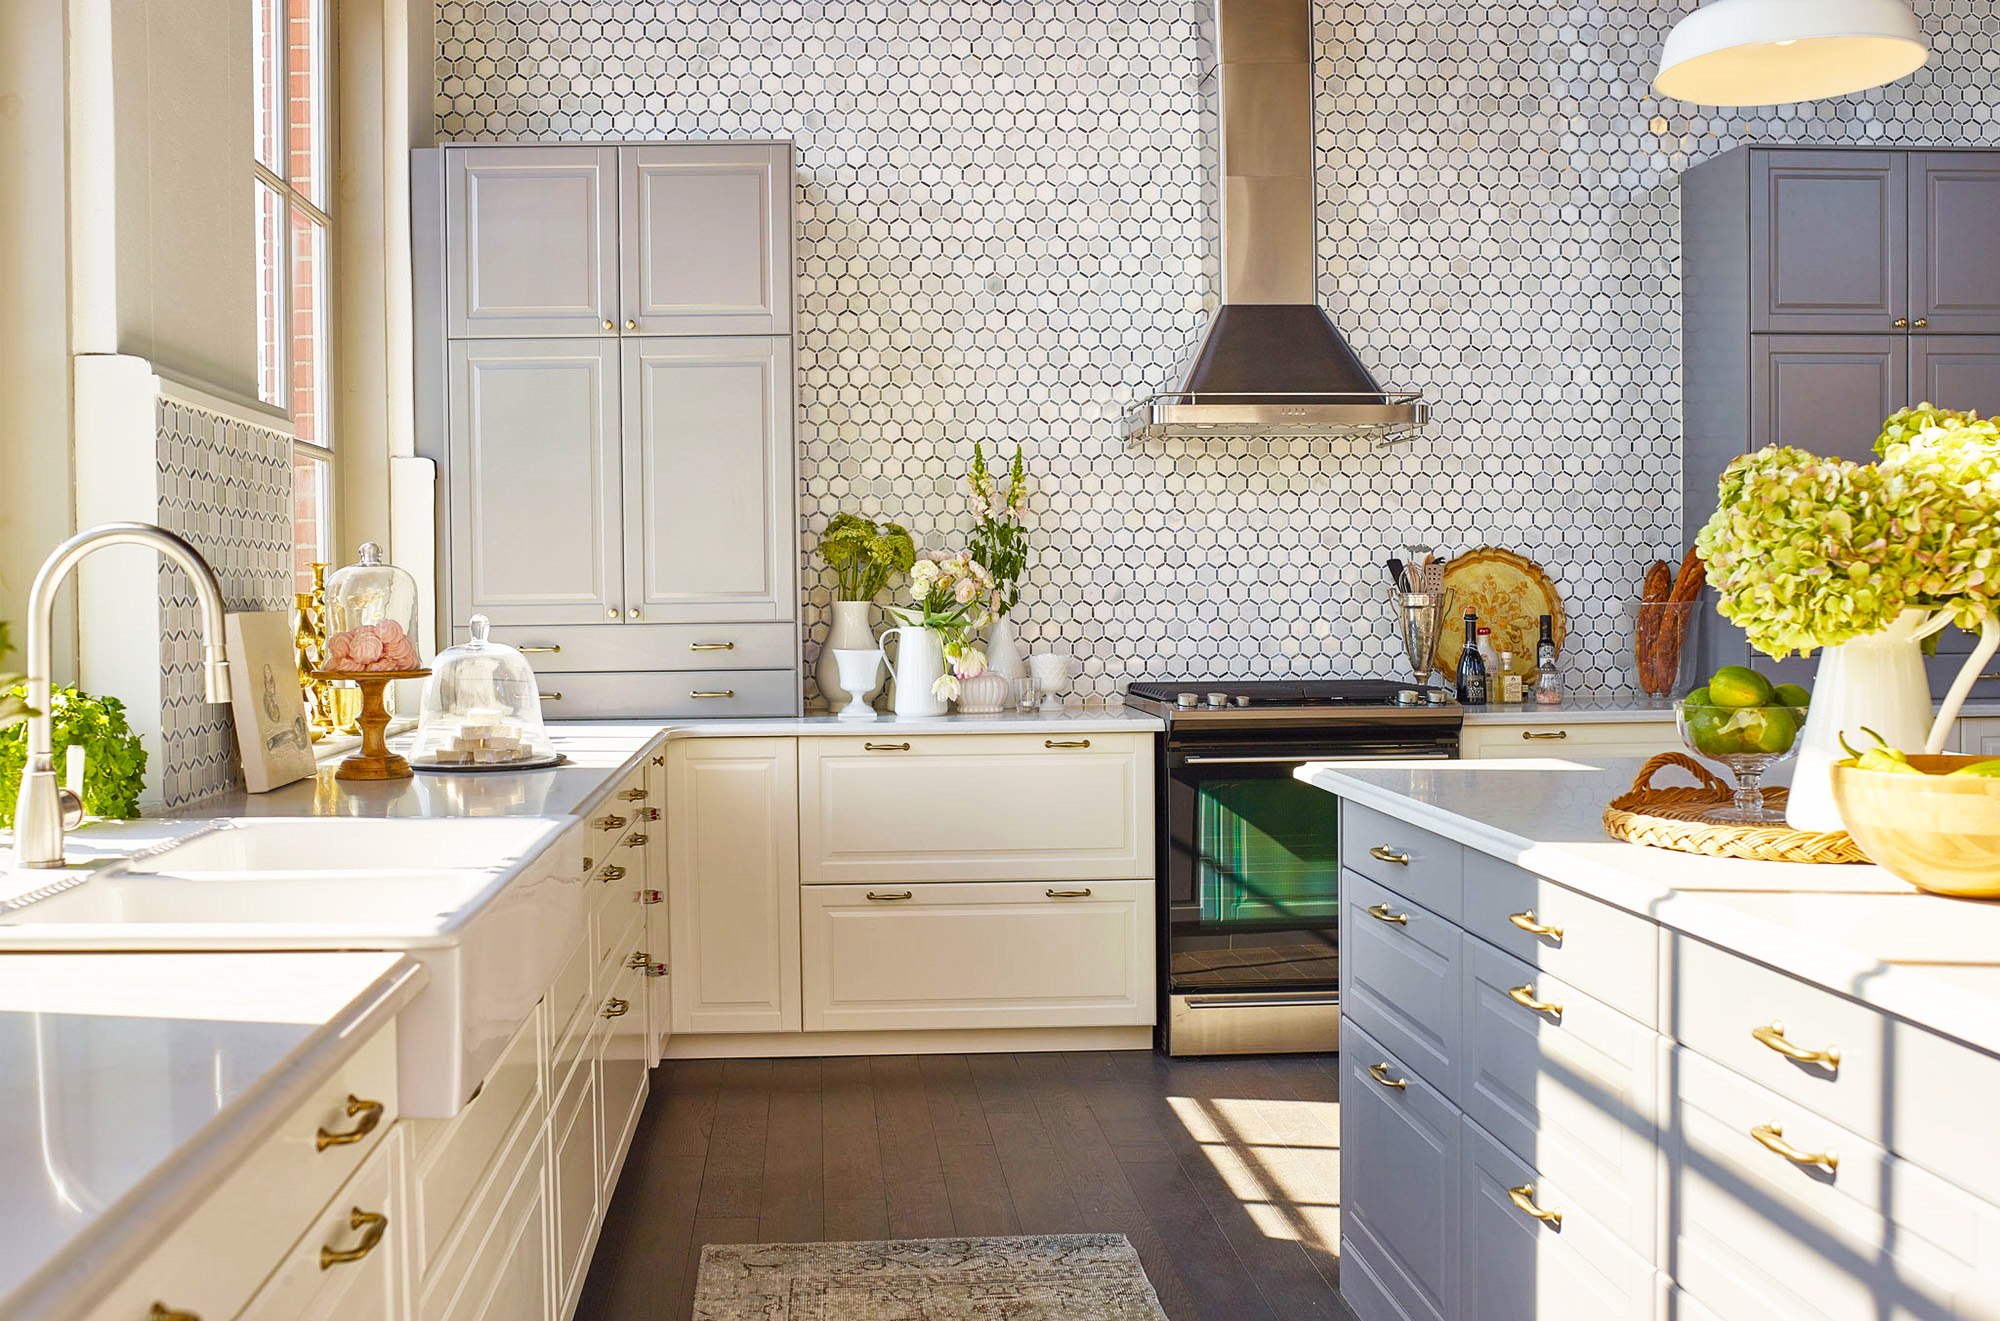 cost to remodel kitchen renovations with average cost remodeling kitchen for modern white kitchen cabinets designs